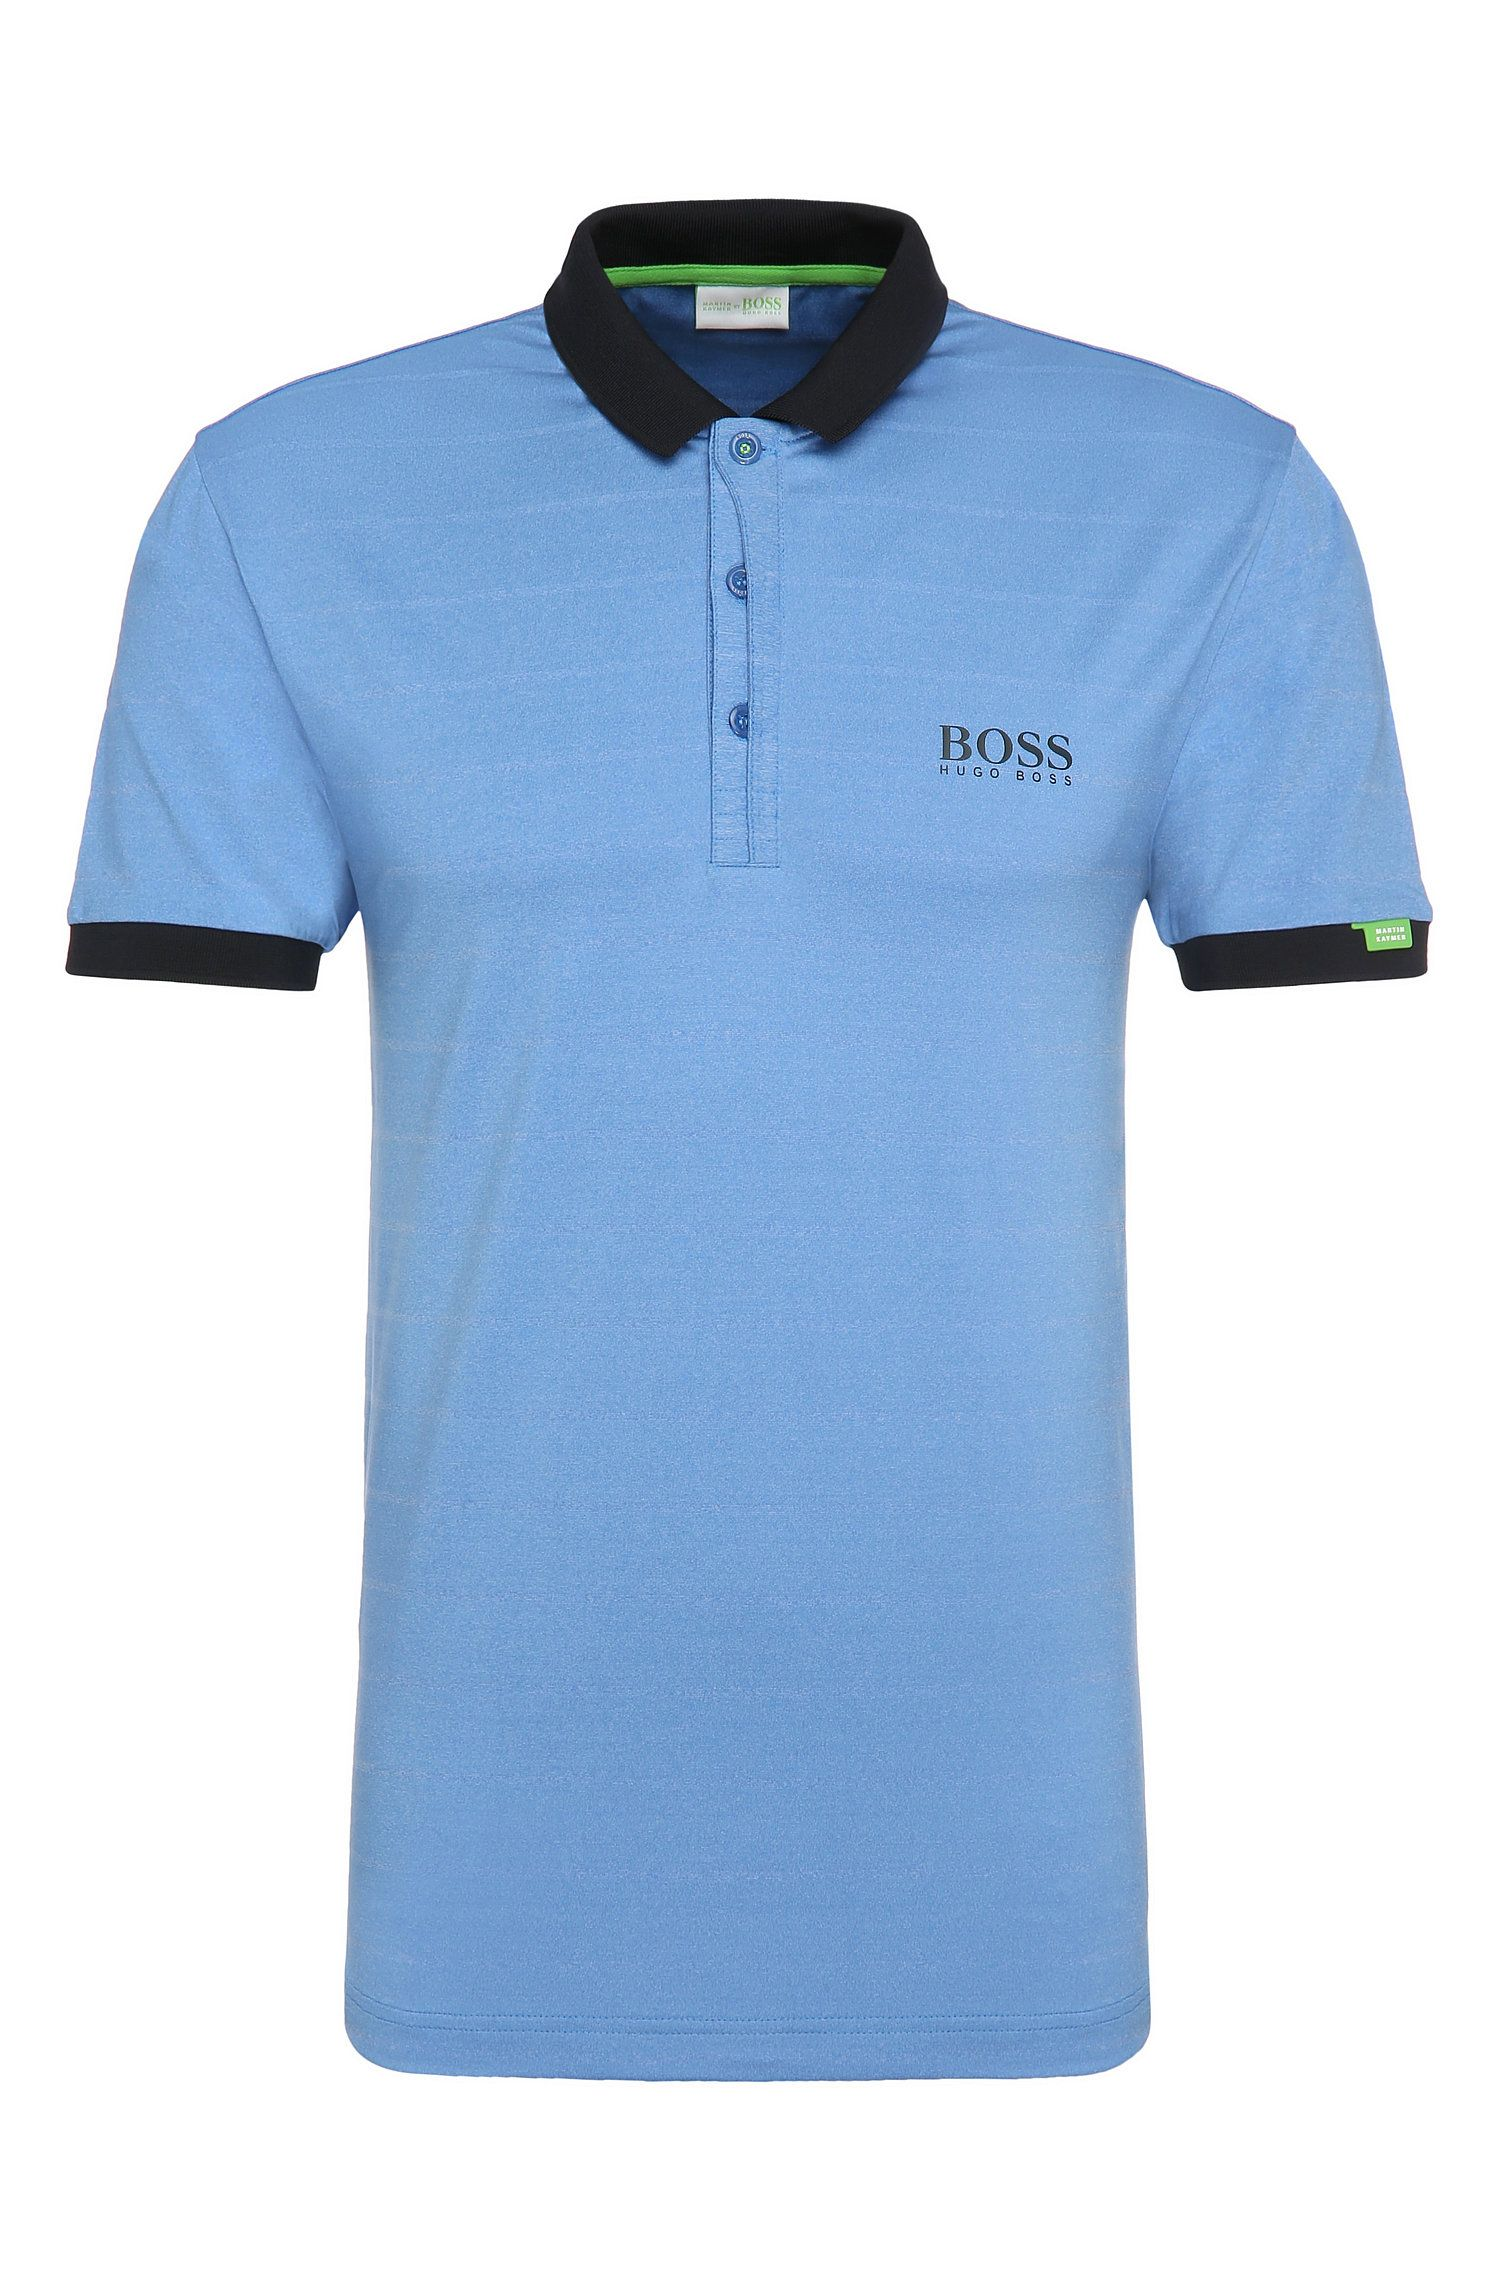 'Paddy MK'   Modern Fit, Moisture Manager Stretch Polo Shirt